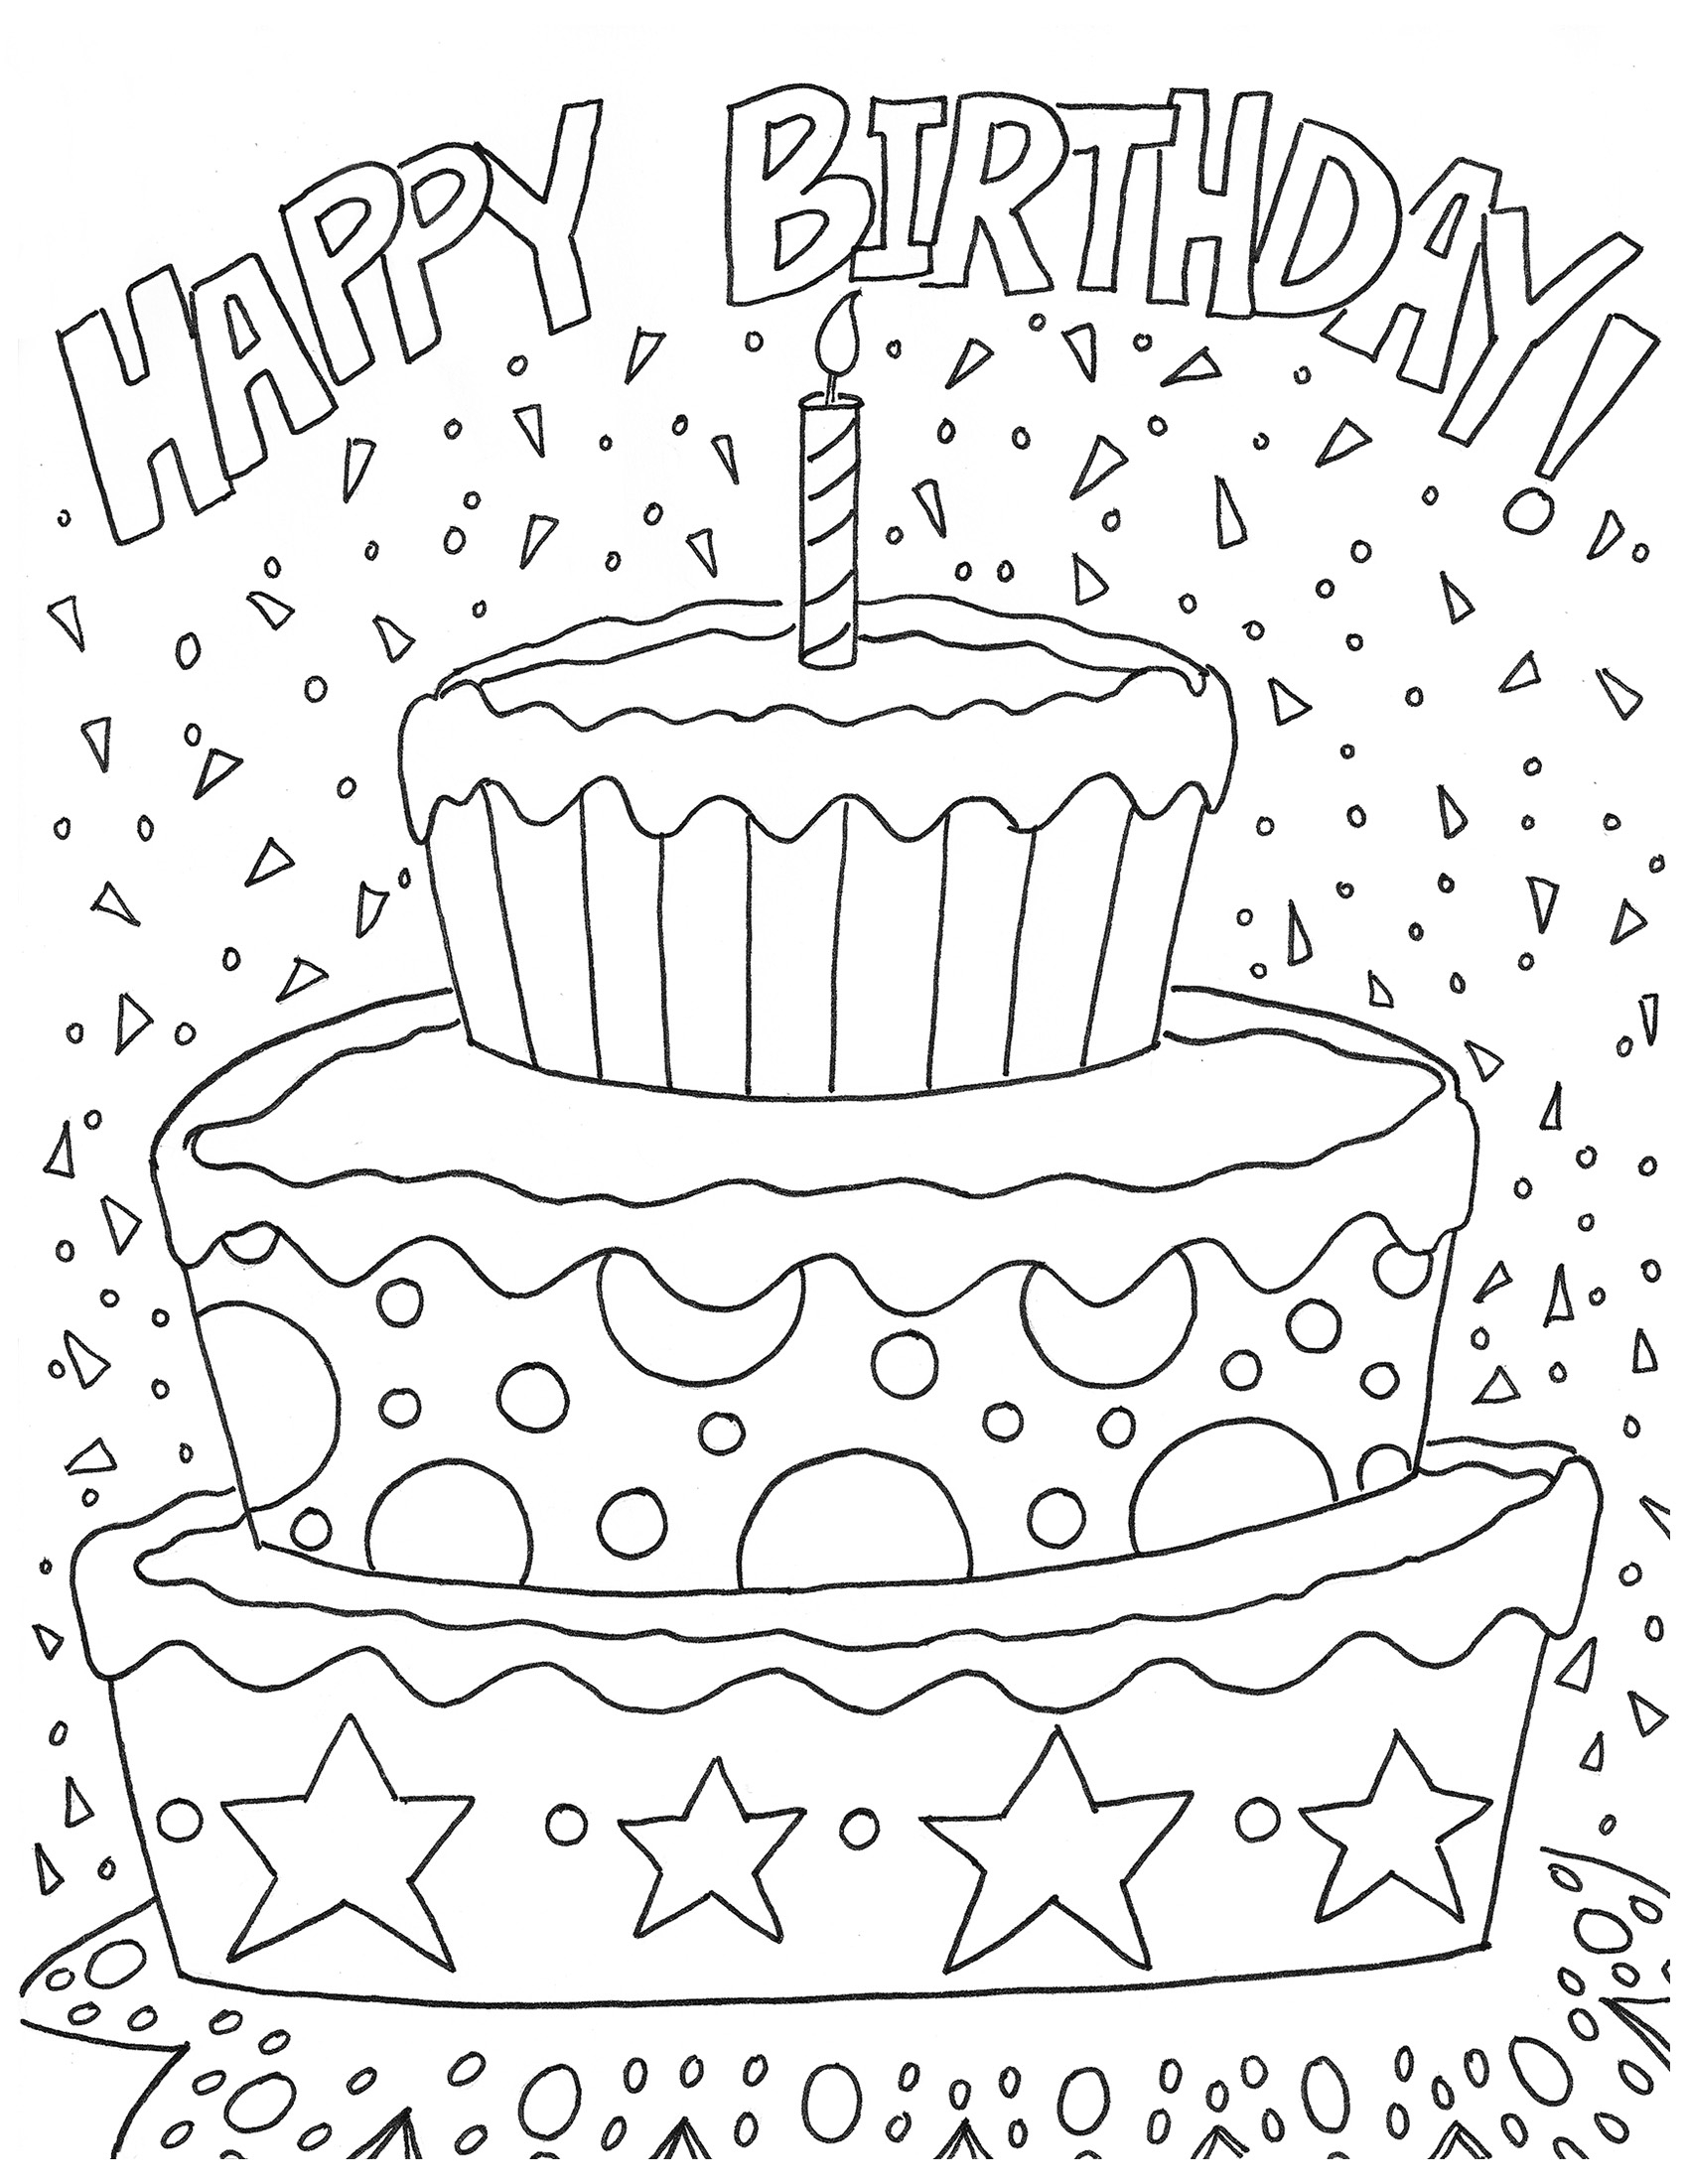 18th birthday coloring pages ; happy-16th-birthday-coloring-pages-collection-15-i-instructive-coloring-pages-for-birthdays-happy-birthday-to-print